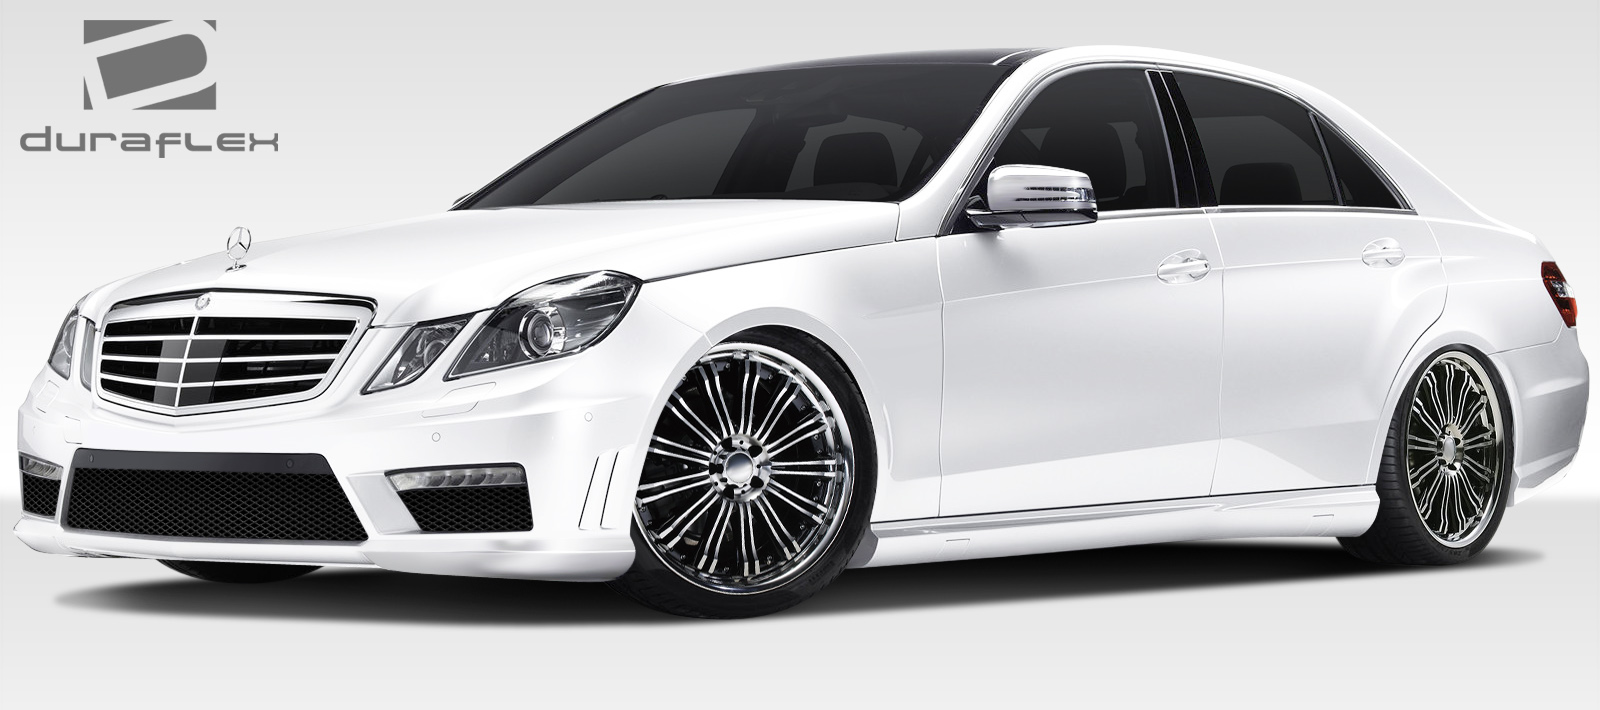 10 13 mercedes e class amg look duraflex full body kit. Black Bedroom Furniture Sets. Home Design Ideas